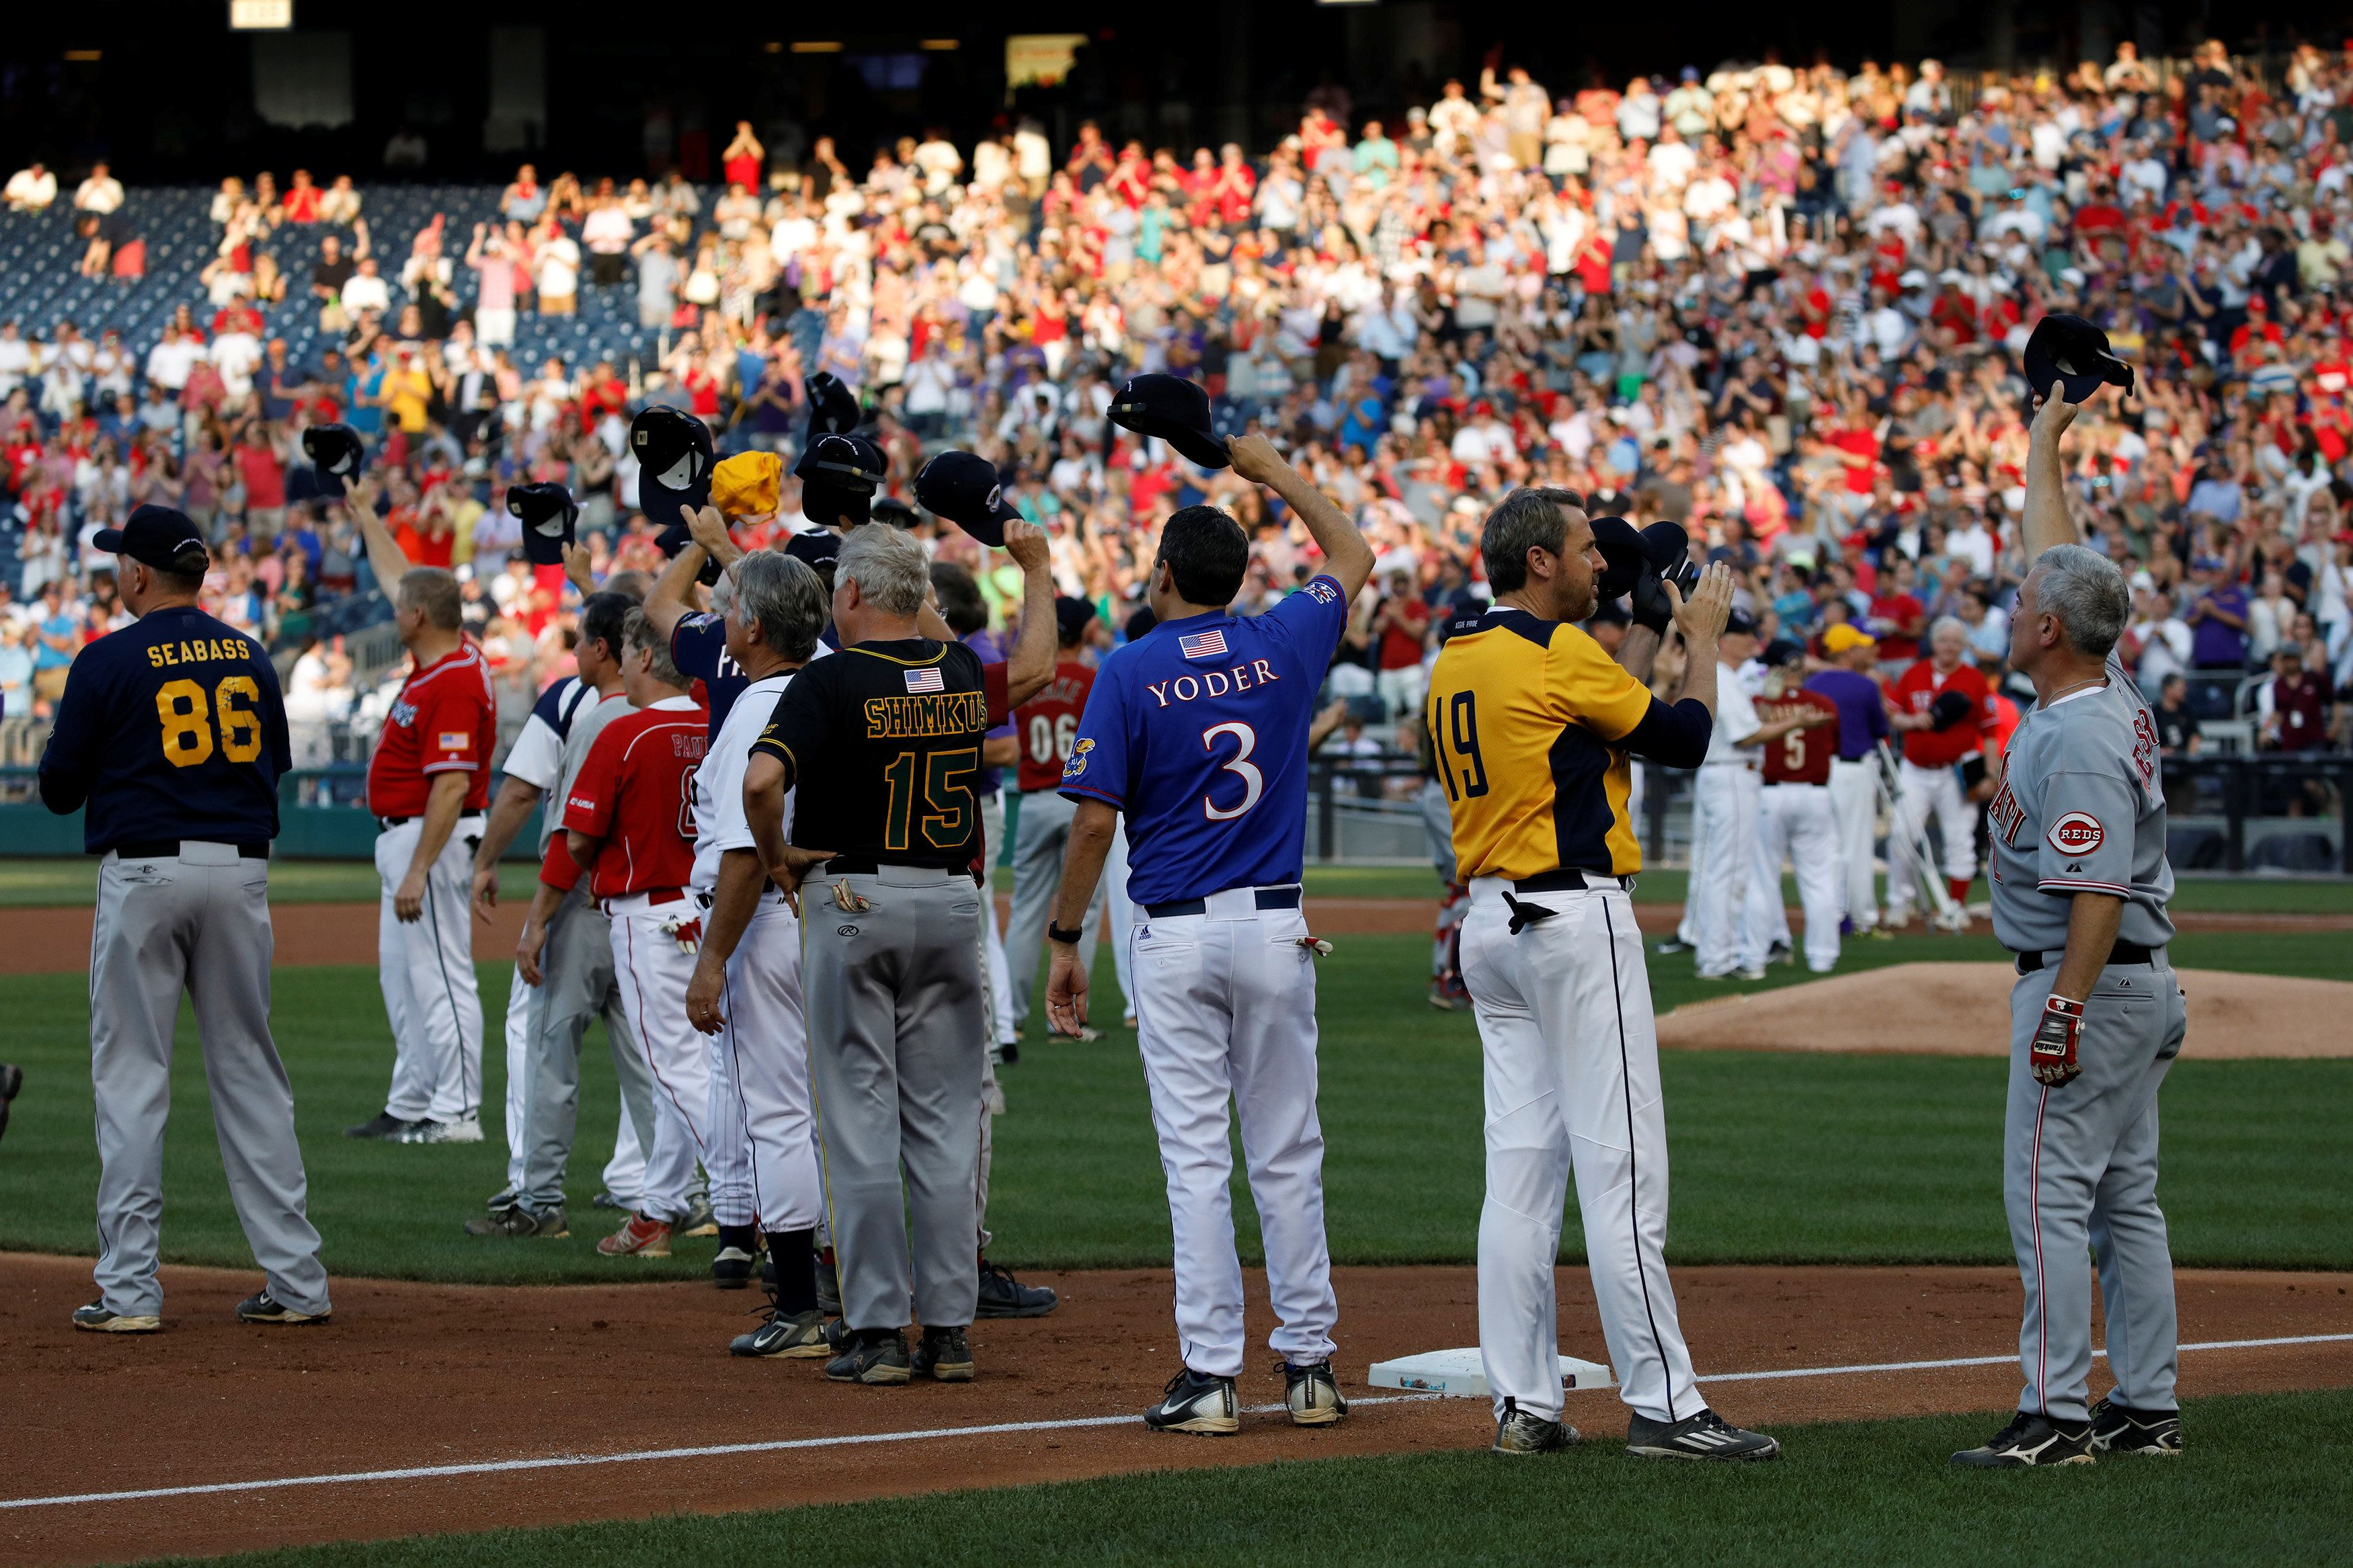 Members of the the Republican and Democratic teams tip their caps to Rep. Steve Scalise during the Congressional Baseball Game at Nationals Park in Washington, U.S., June 15, 2017. REUTERS/Aaron P. Bernstein